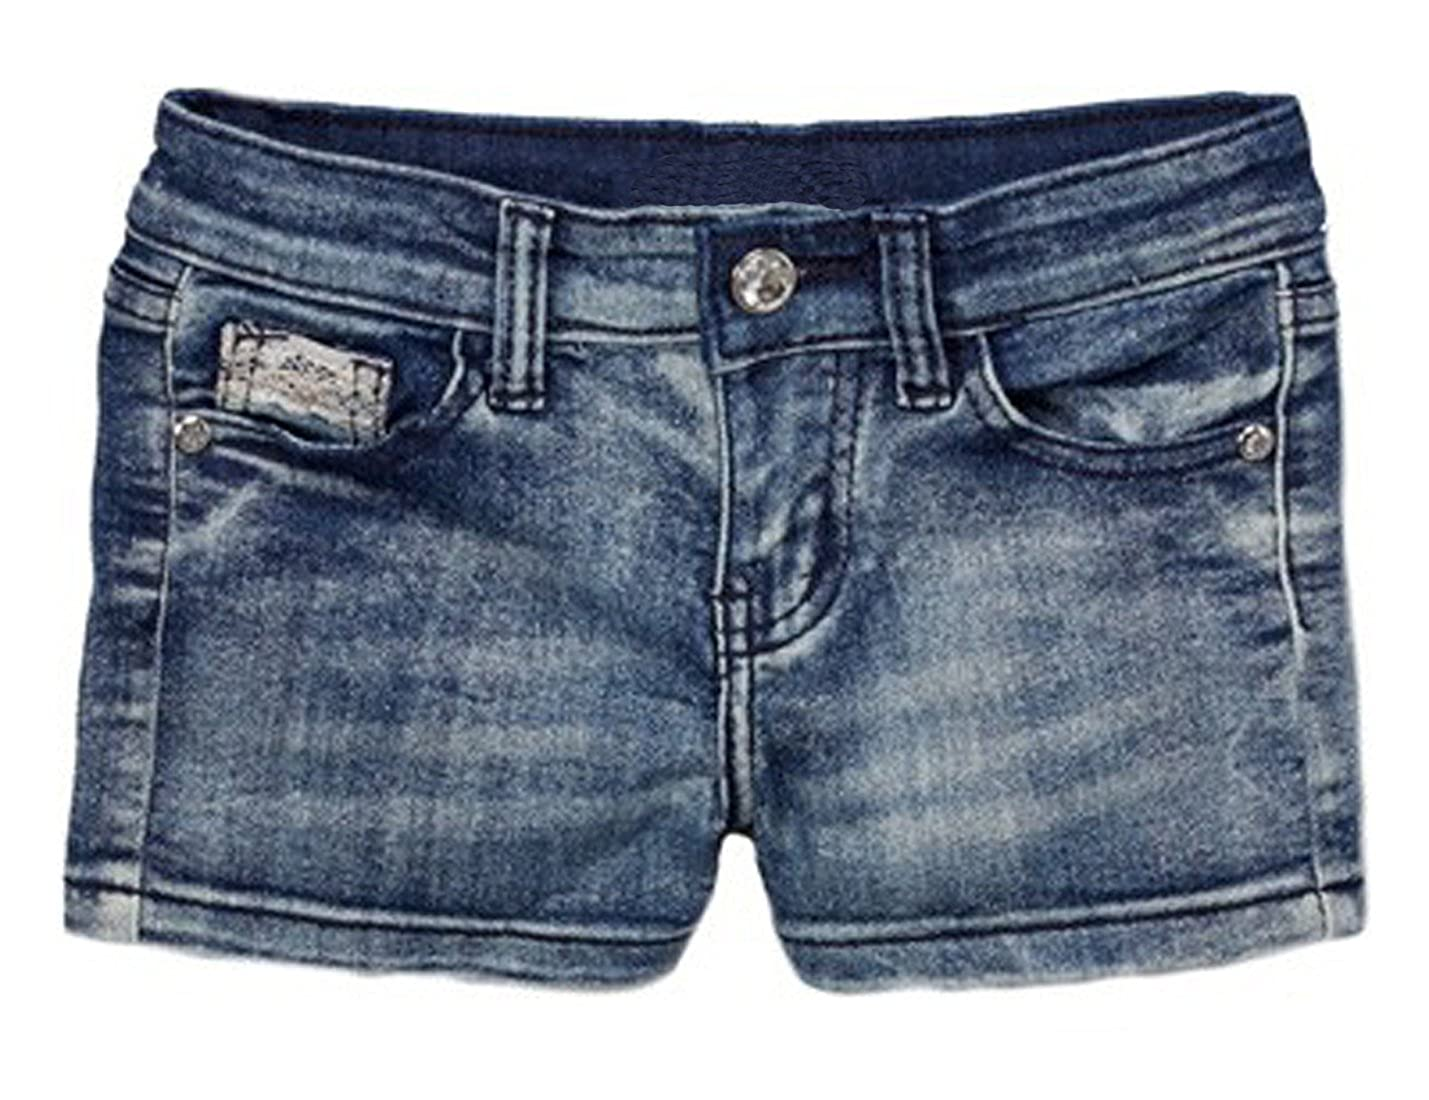 Pout N' Sprout Girls Denim Shorts with Laced Pocket Trim 4-14 yrs